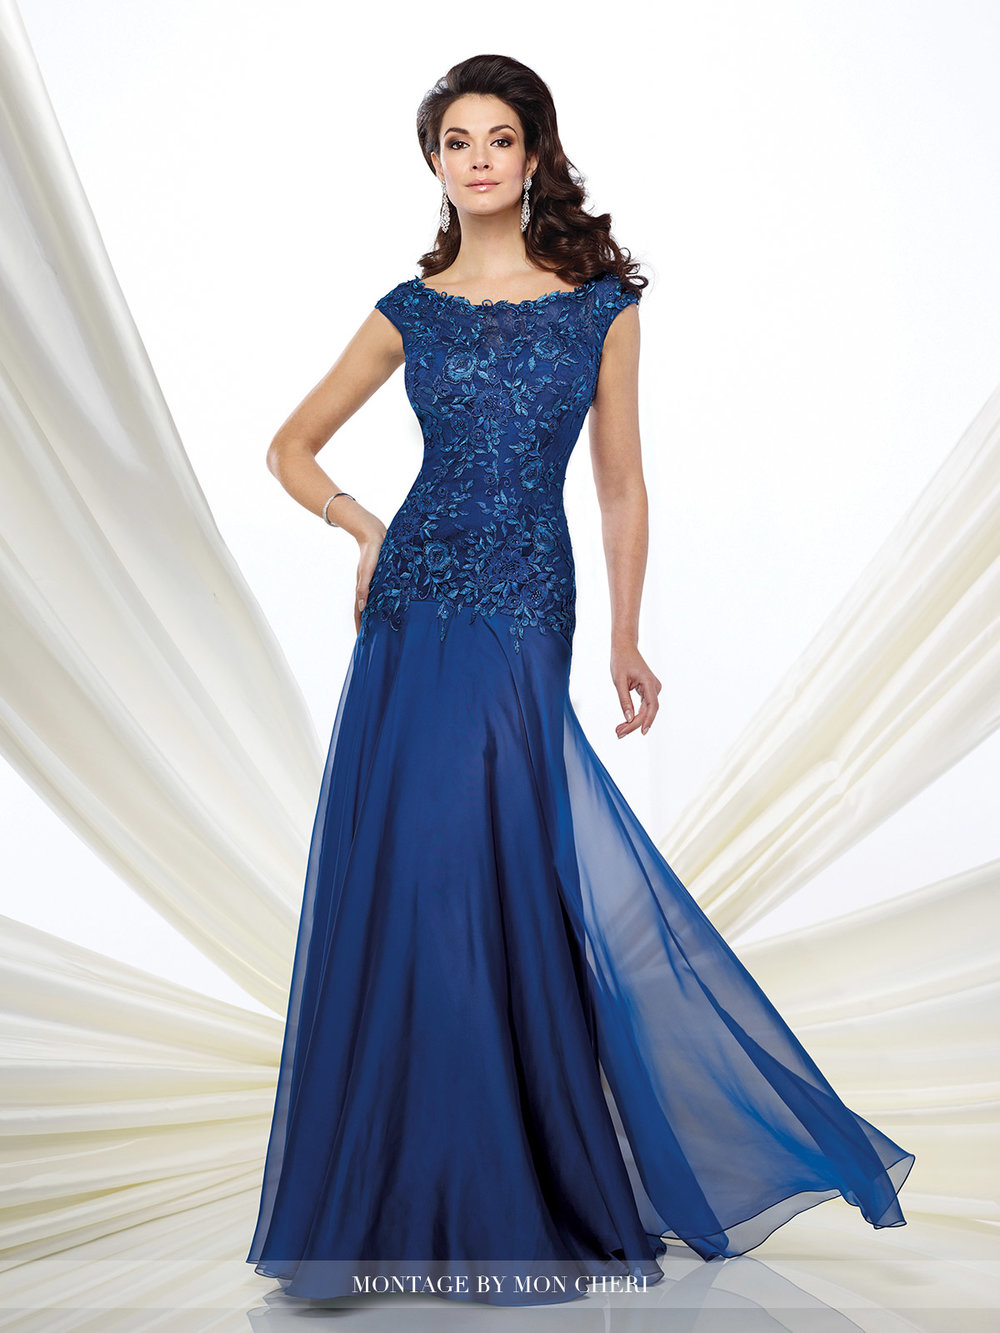 216962blue_mother_of_the_bride_dresses-1.jpg